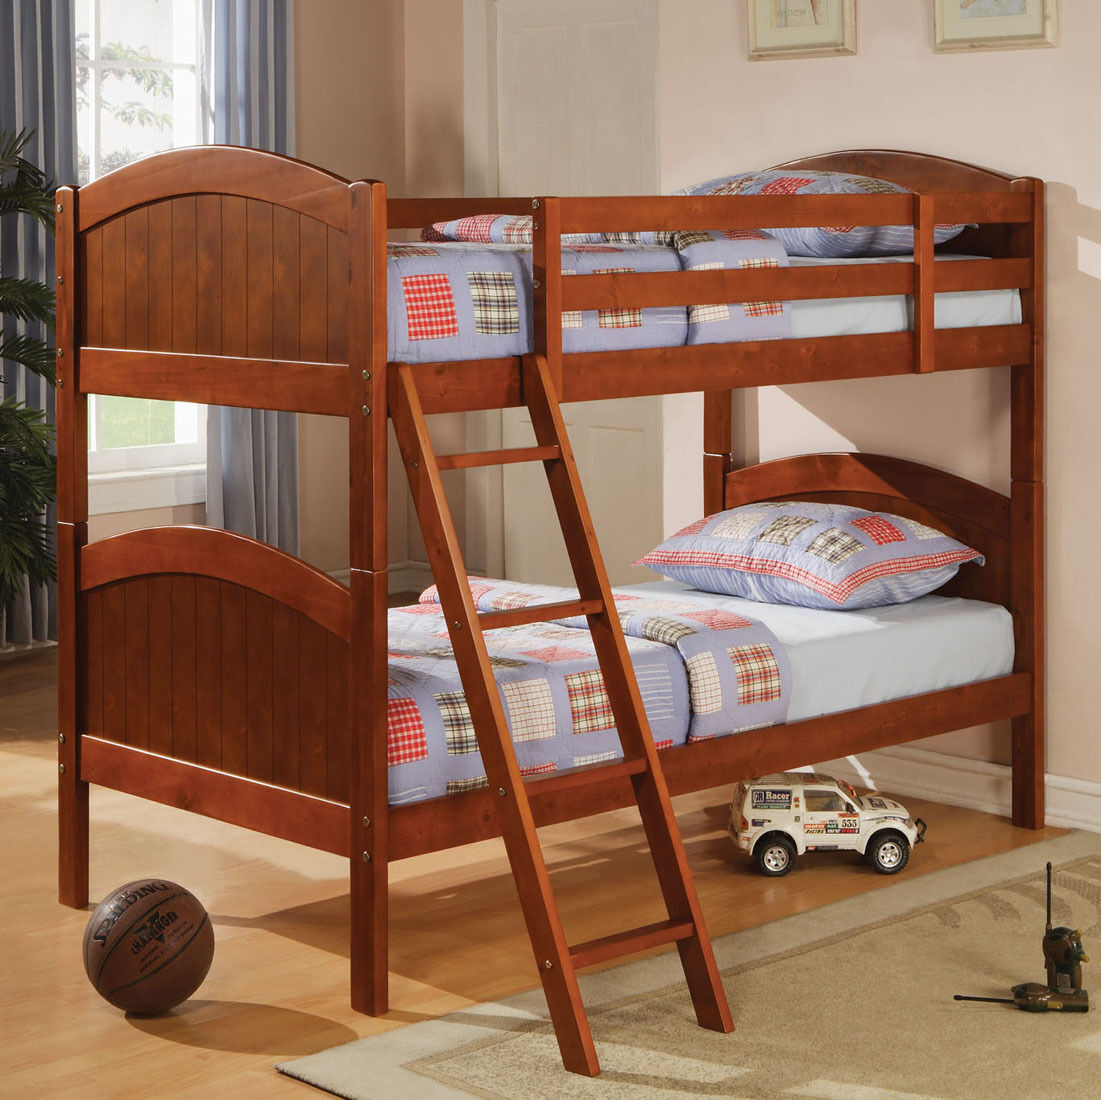 Pine bunk beds buying guide ebay for Furniture 123 bunk beds